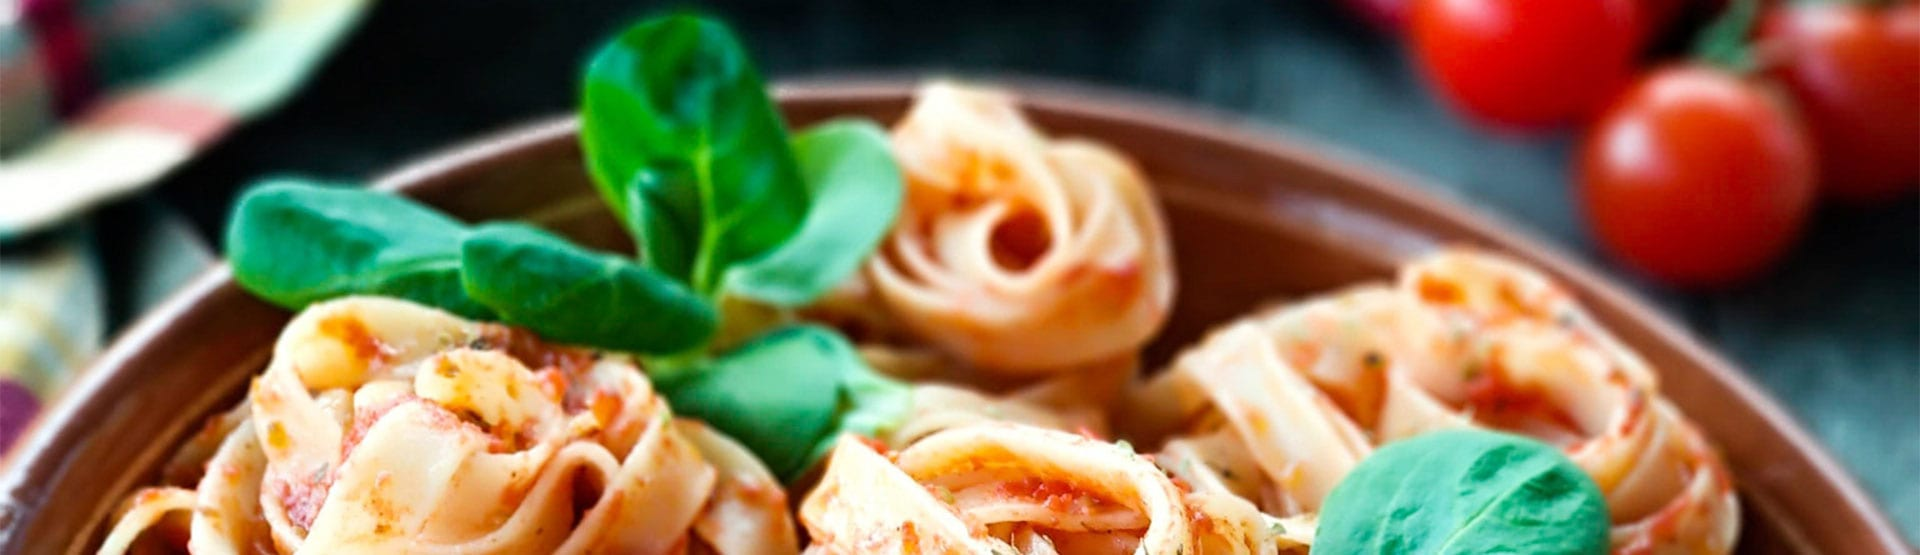 Cookery & Wine Tasting in Tuscany